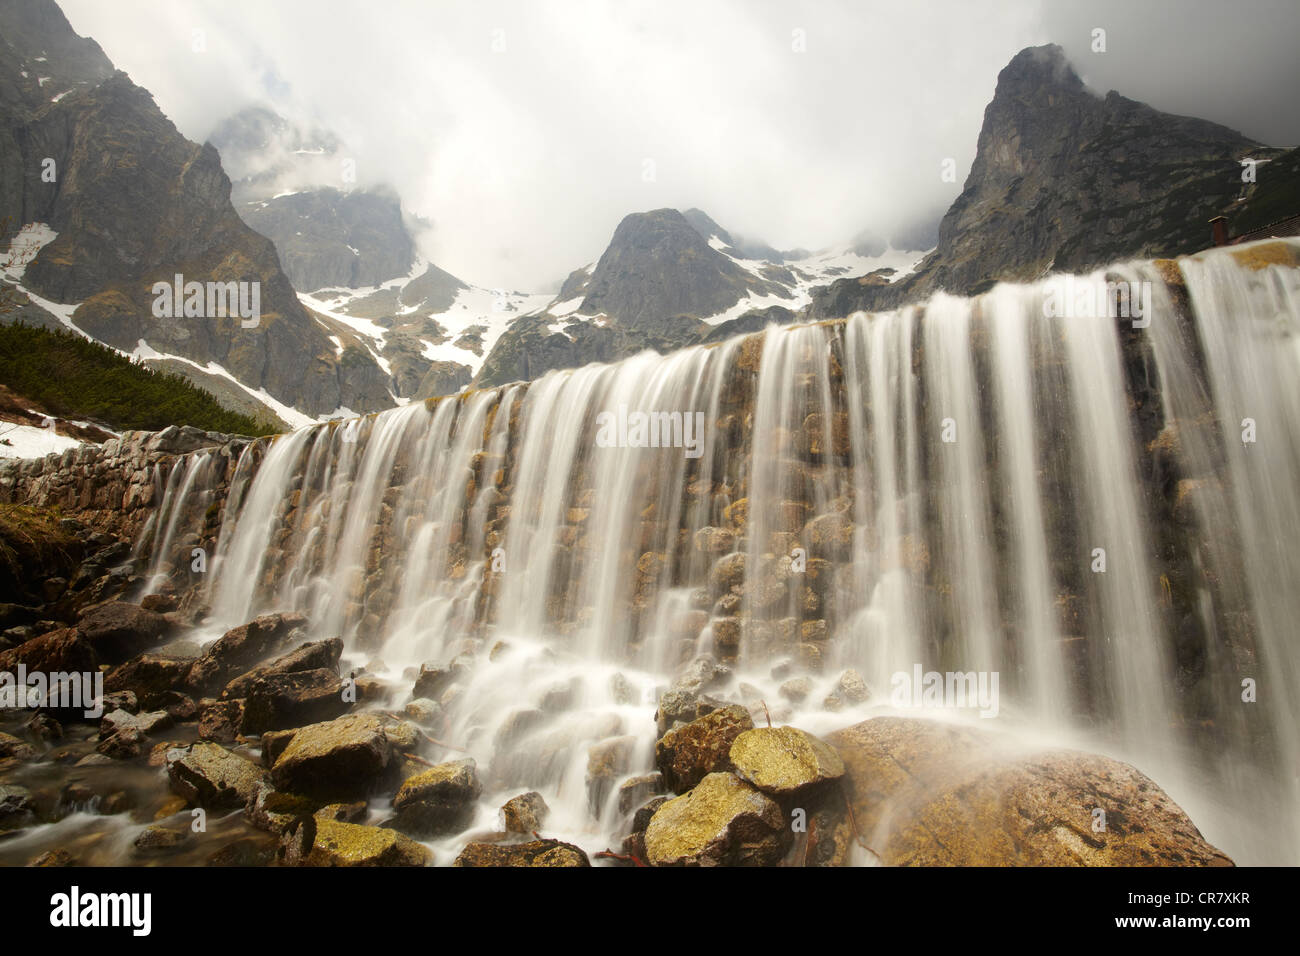 Waterfall from Zelene Pleso below the High Tatra mountains in Slovakia. - Stock Image